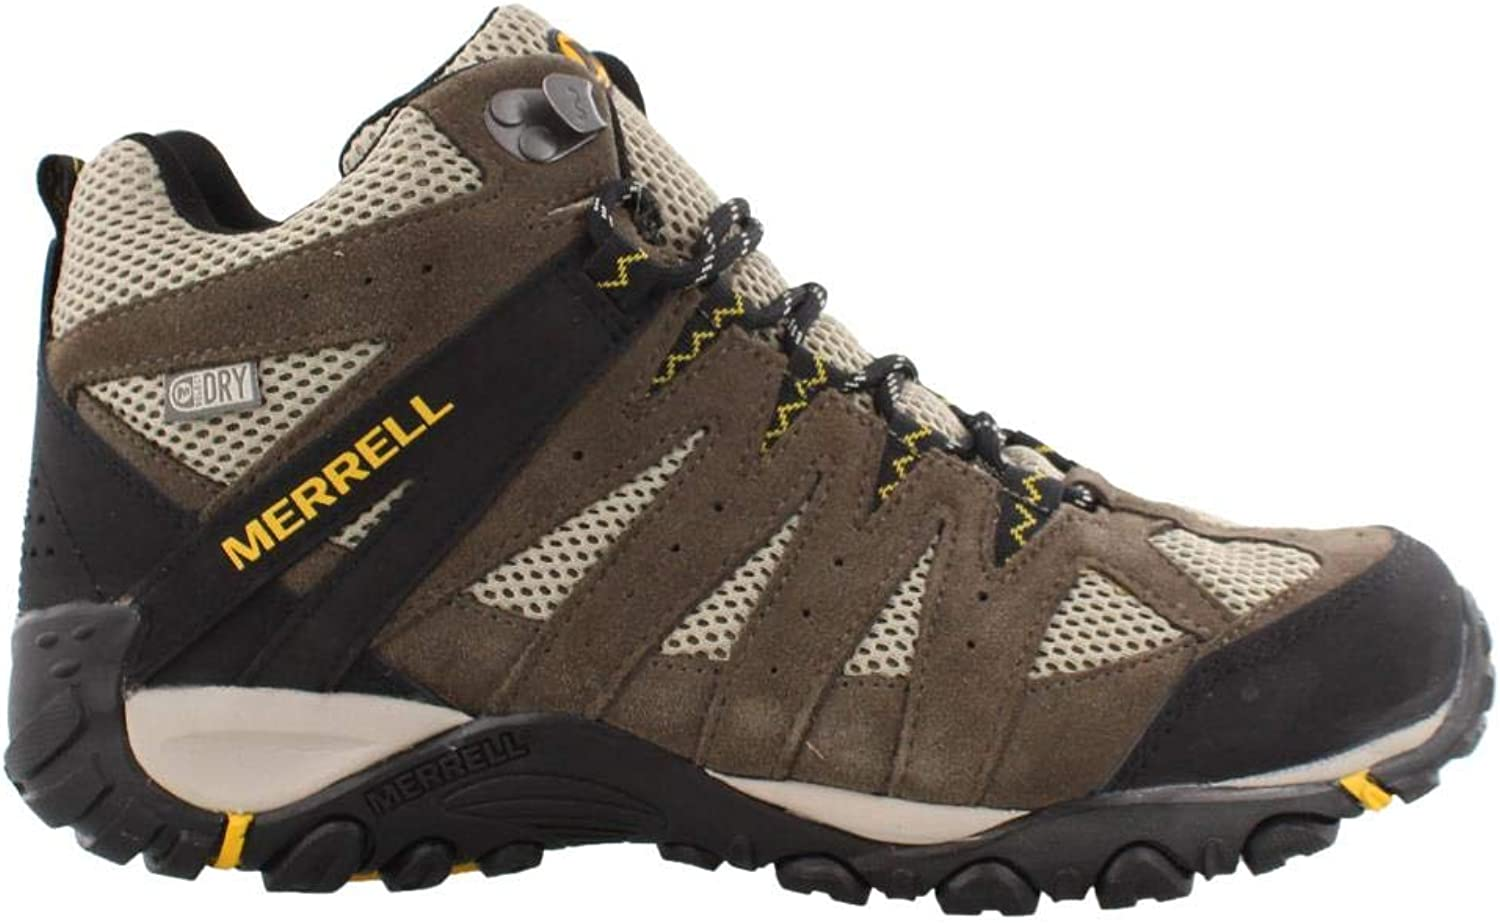 b4c1c3772c1 Merrell Men's, Accentor 2 Mid Ventilator Waterproof nozuxg3530-New ...